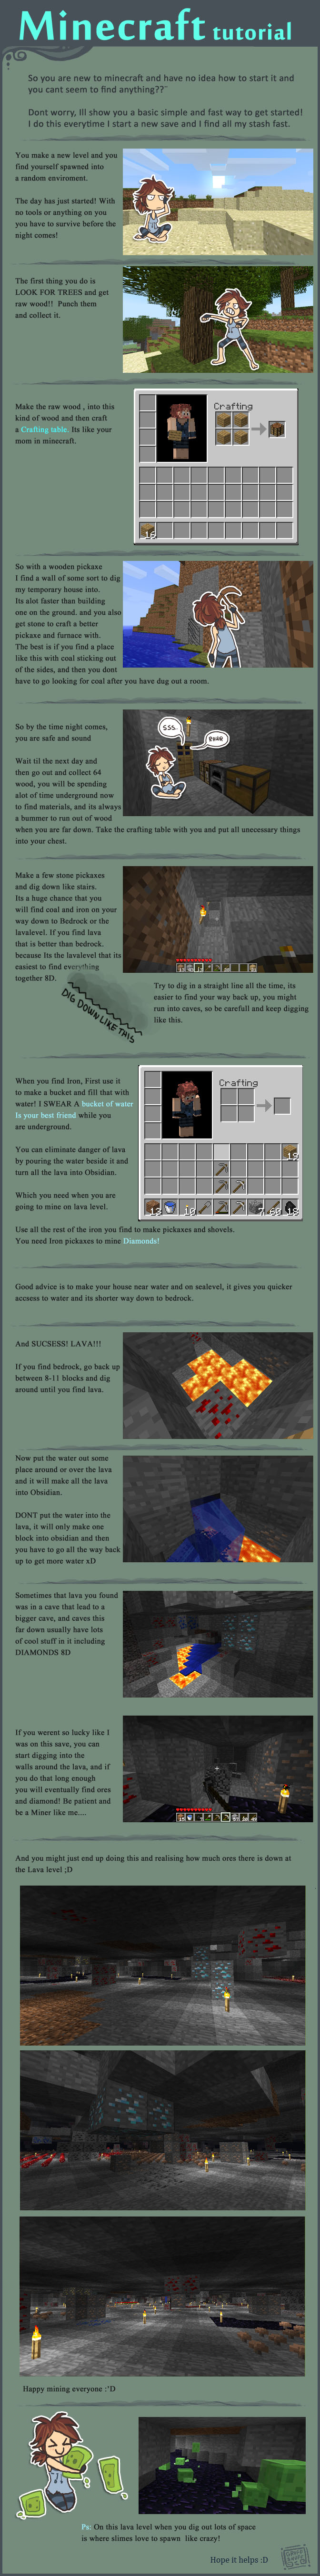 Minecraft-for-Beginners.jpg